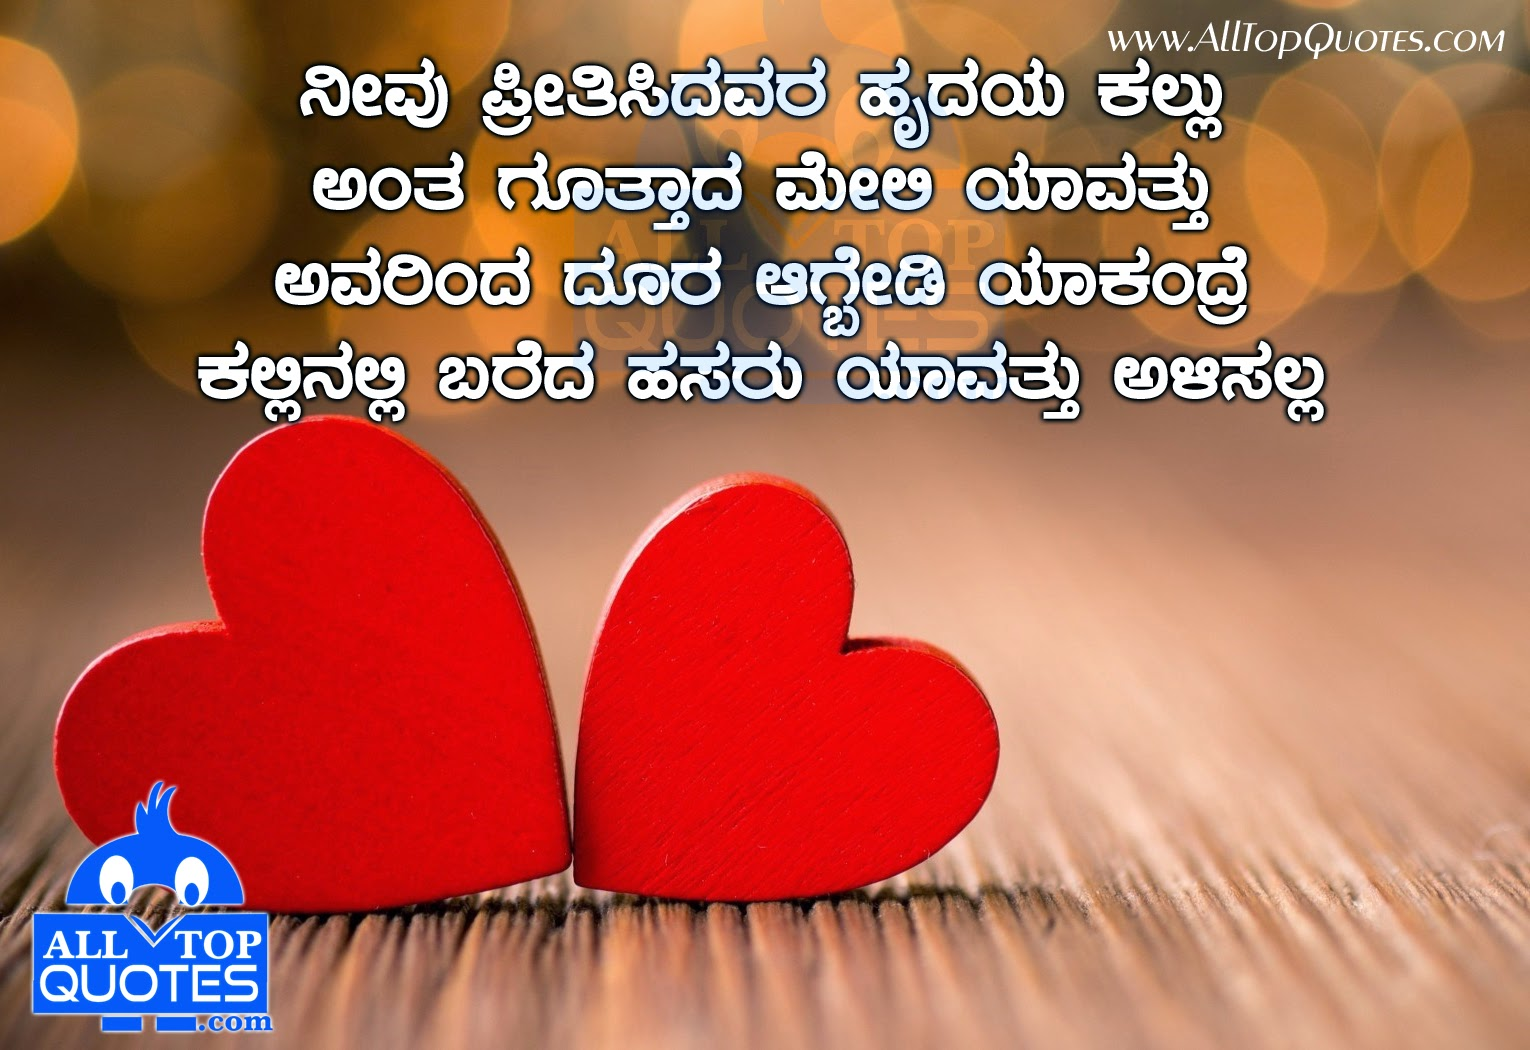 Kannada Love Feeling Images Beautiful lover quotation in kannada all ...